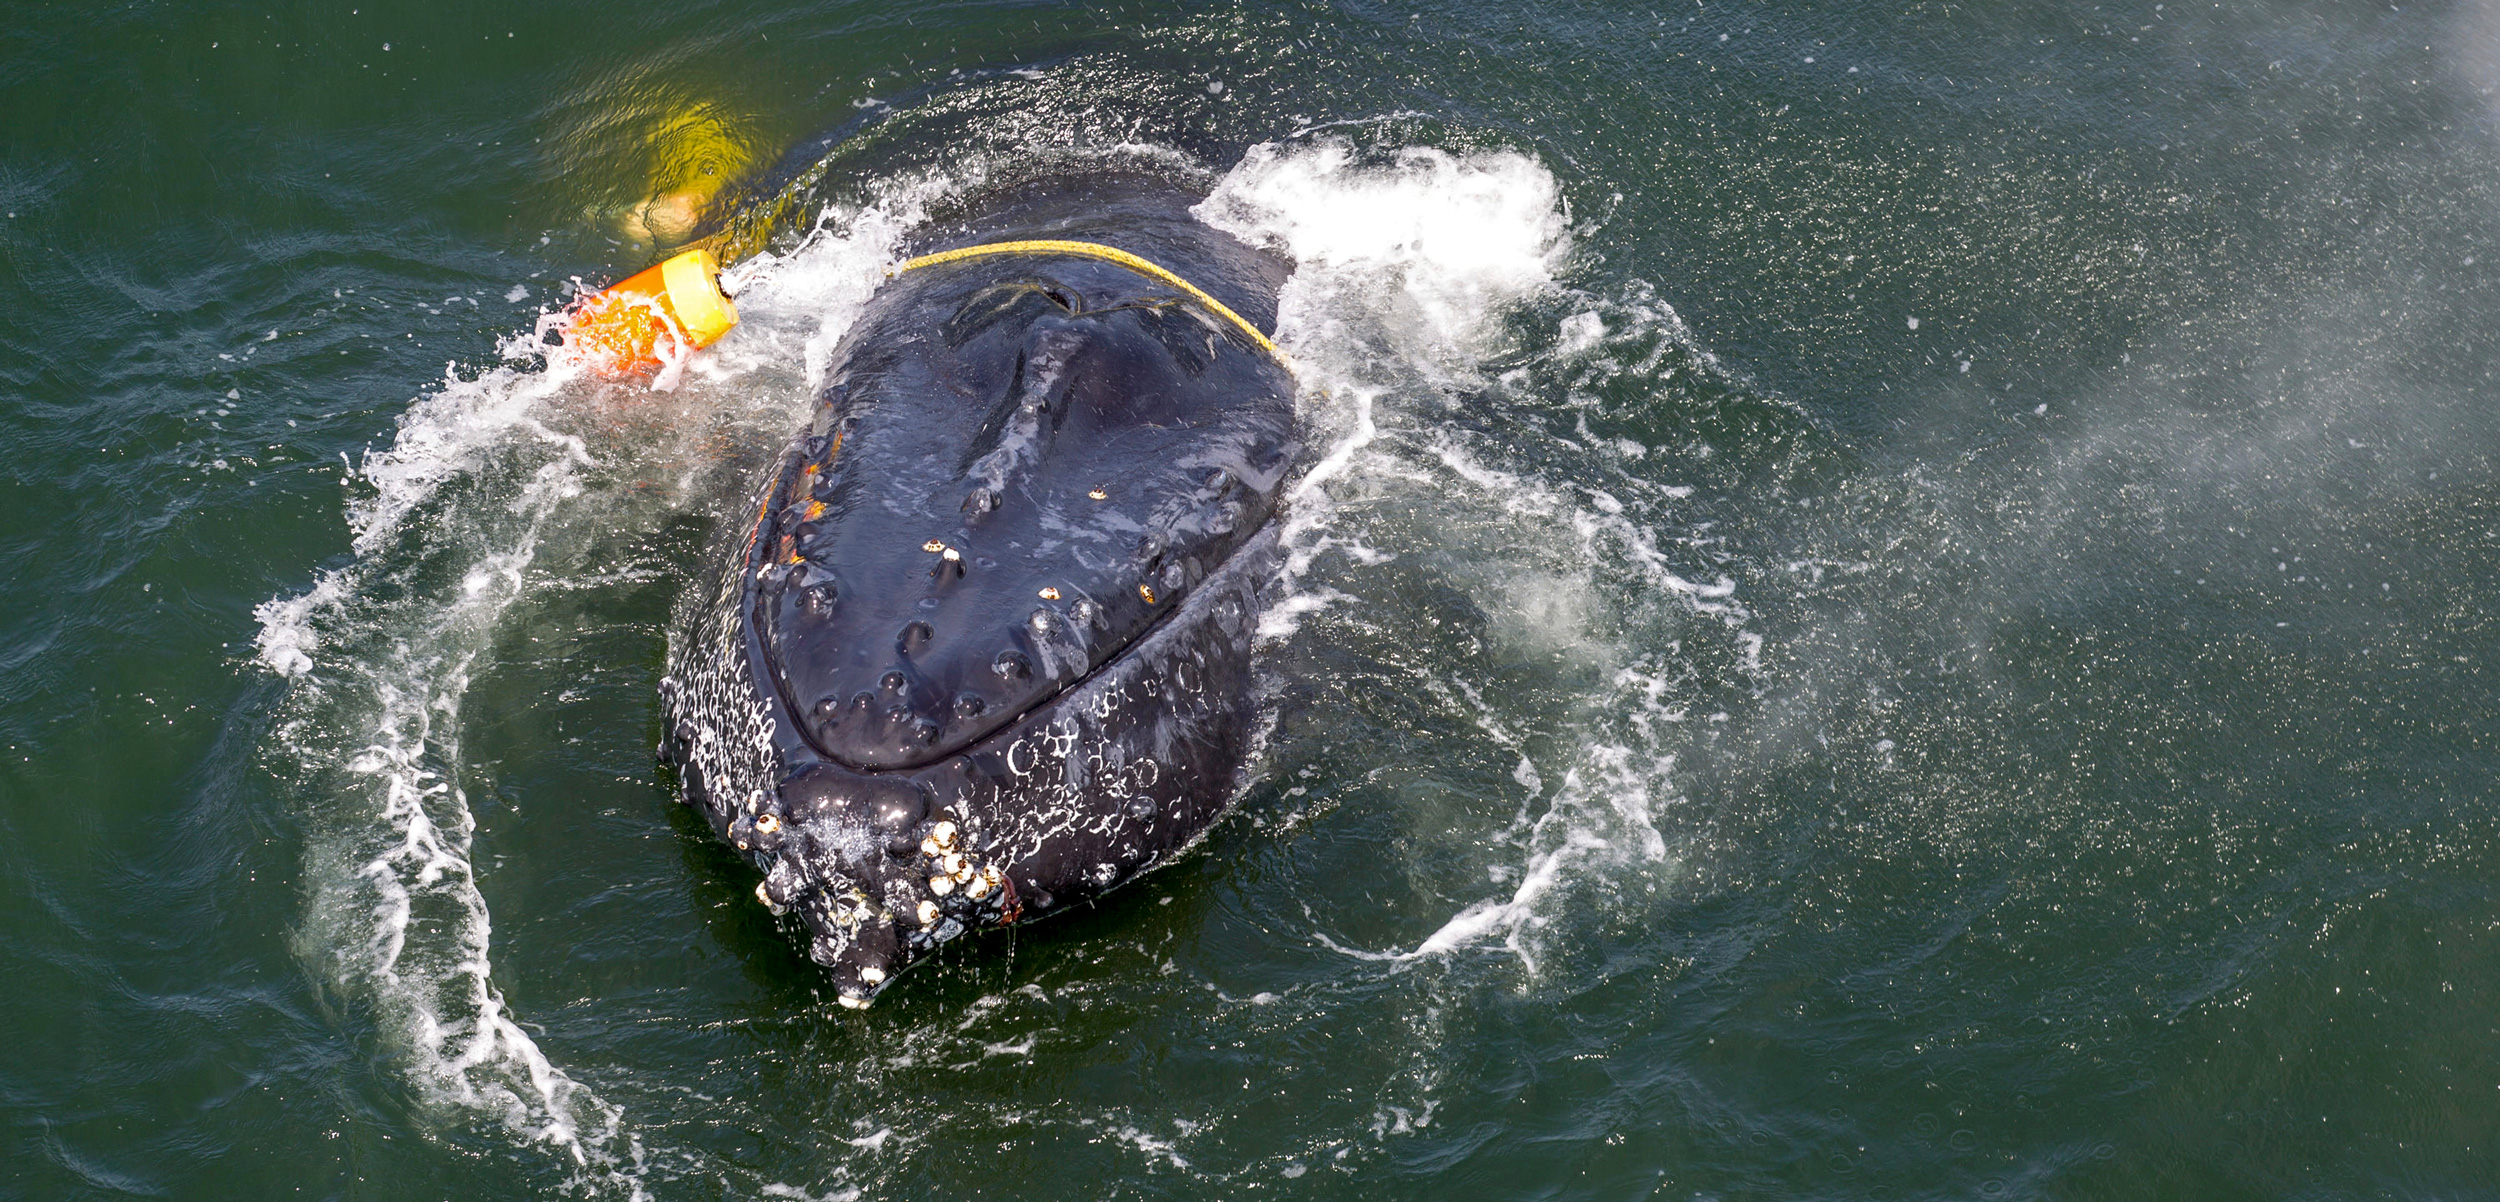 humpback whale entangled in fishing gear